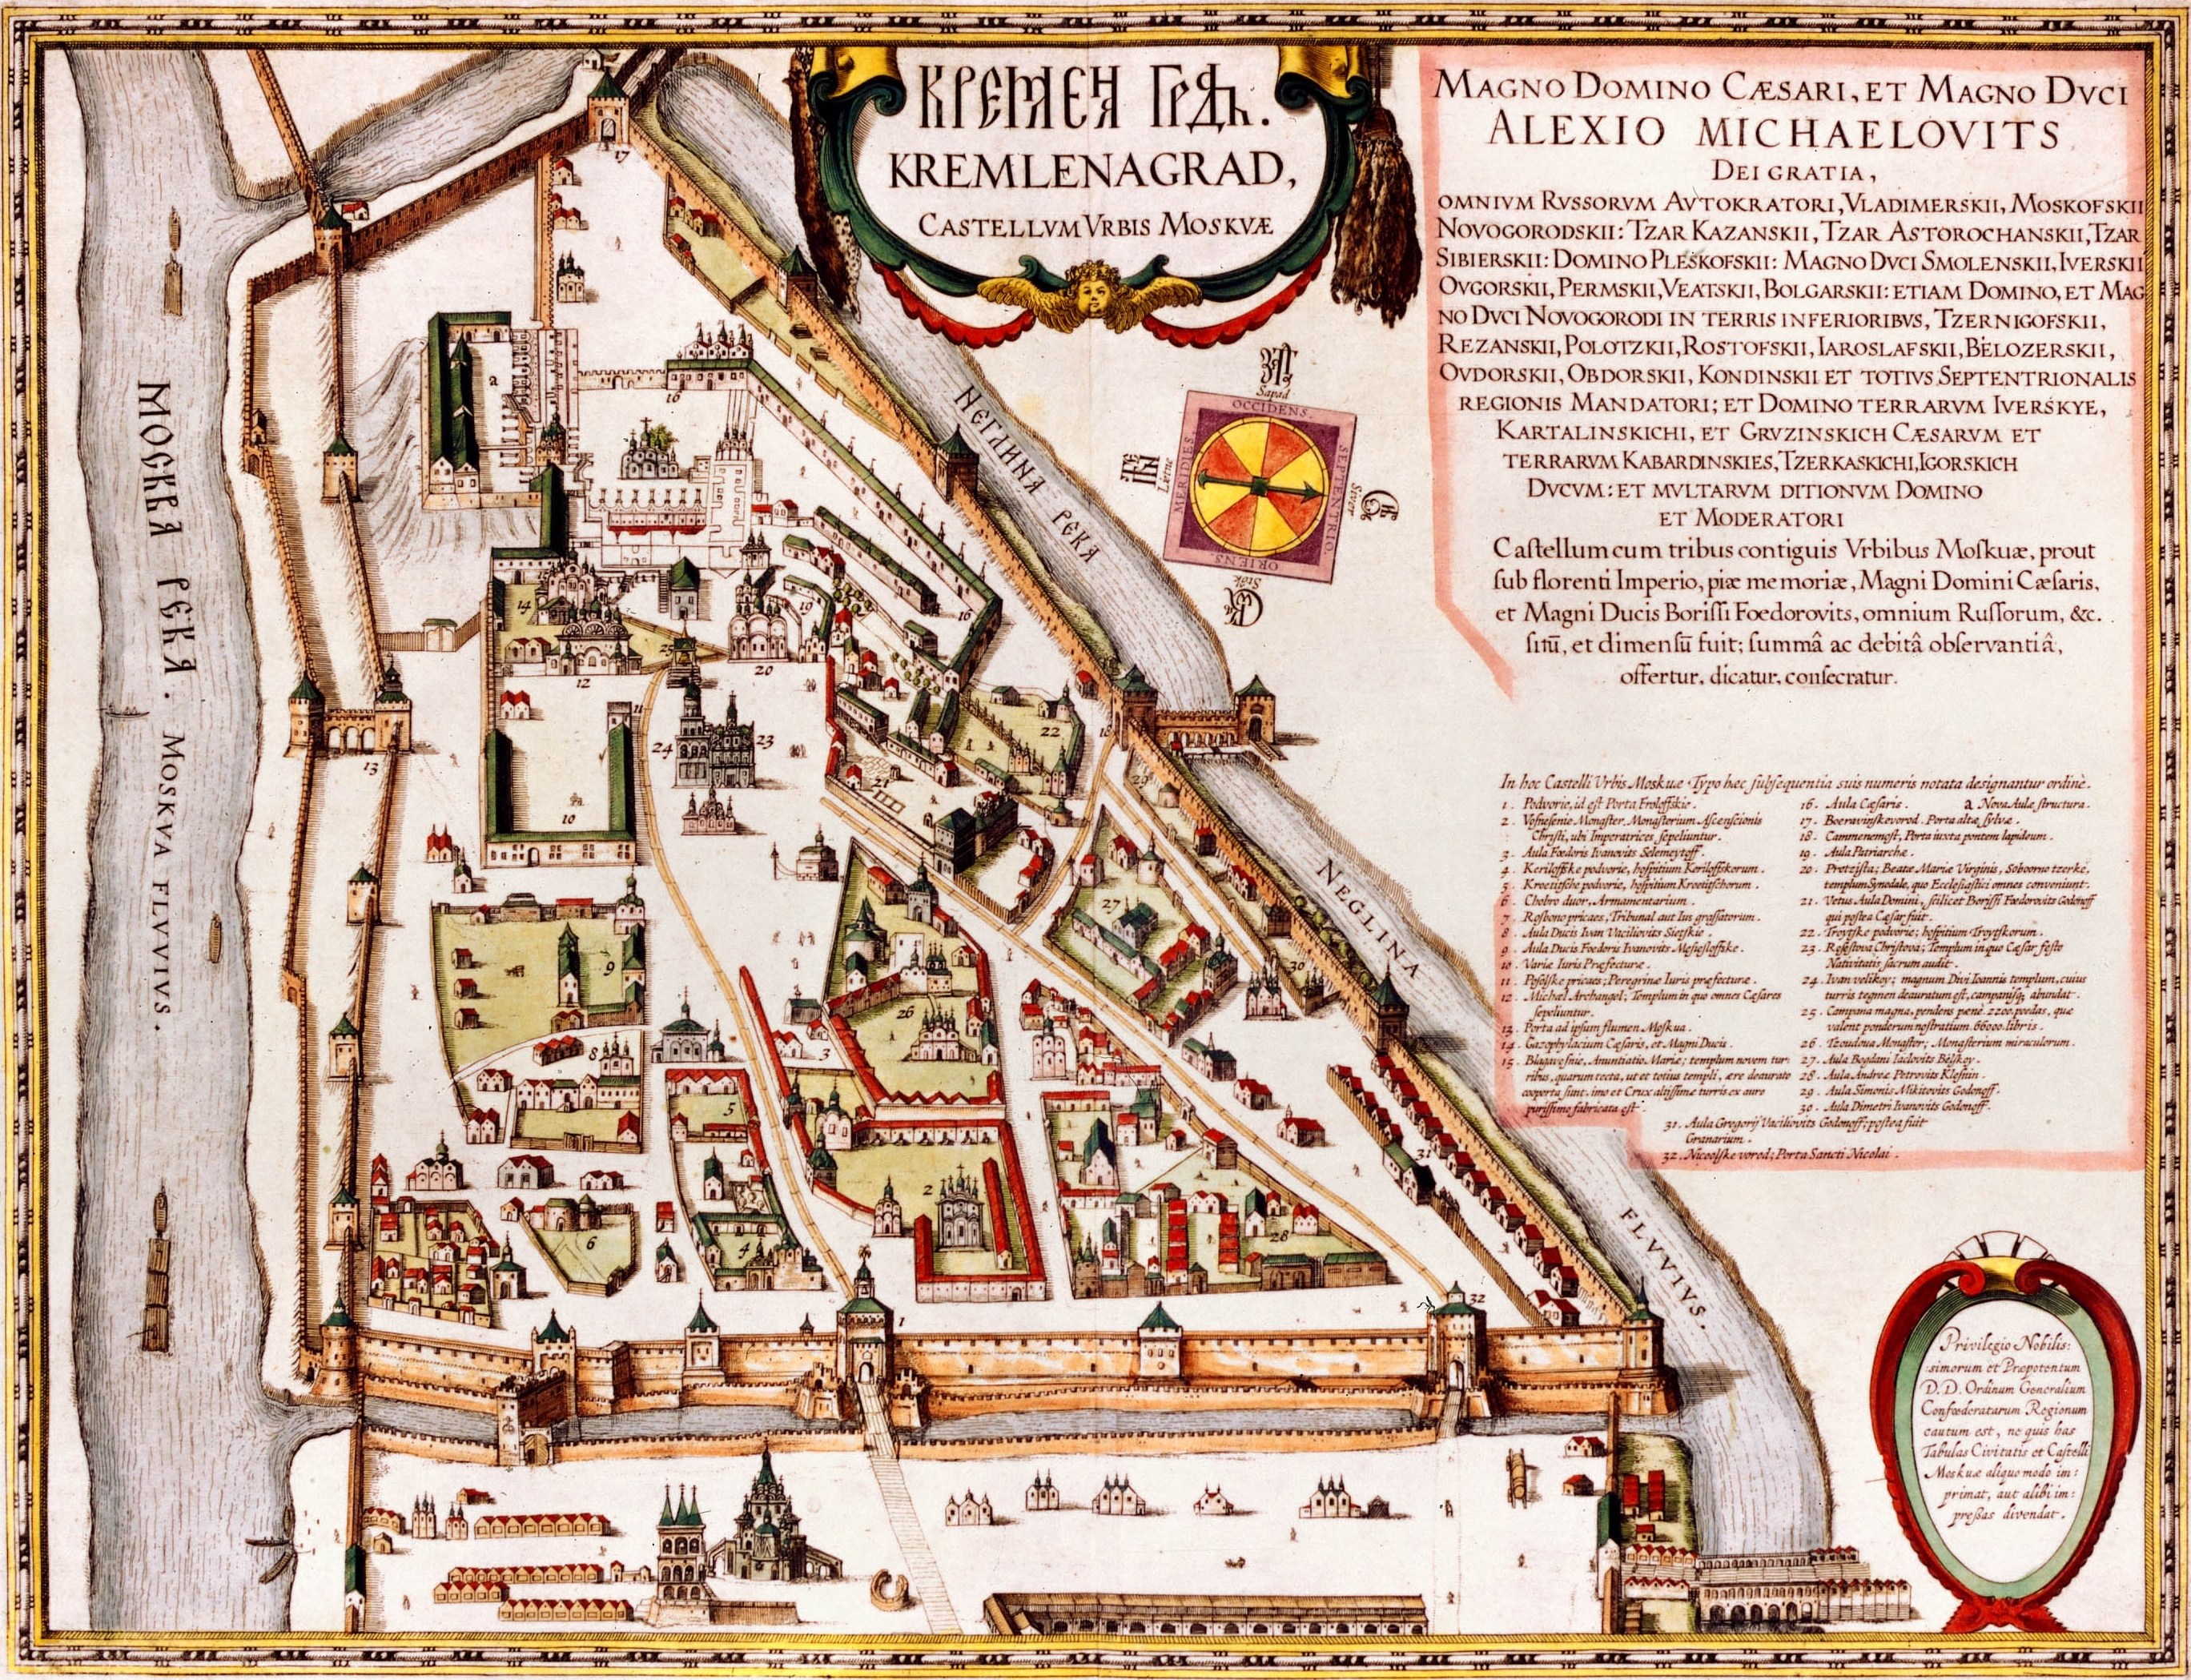 Kremlenagrad Castellum Urbis Moskvae: the first detailed map of the Moscow Kremlin, created during the reign of Alexis Mikhailovich, 1663.